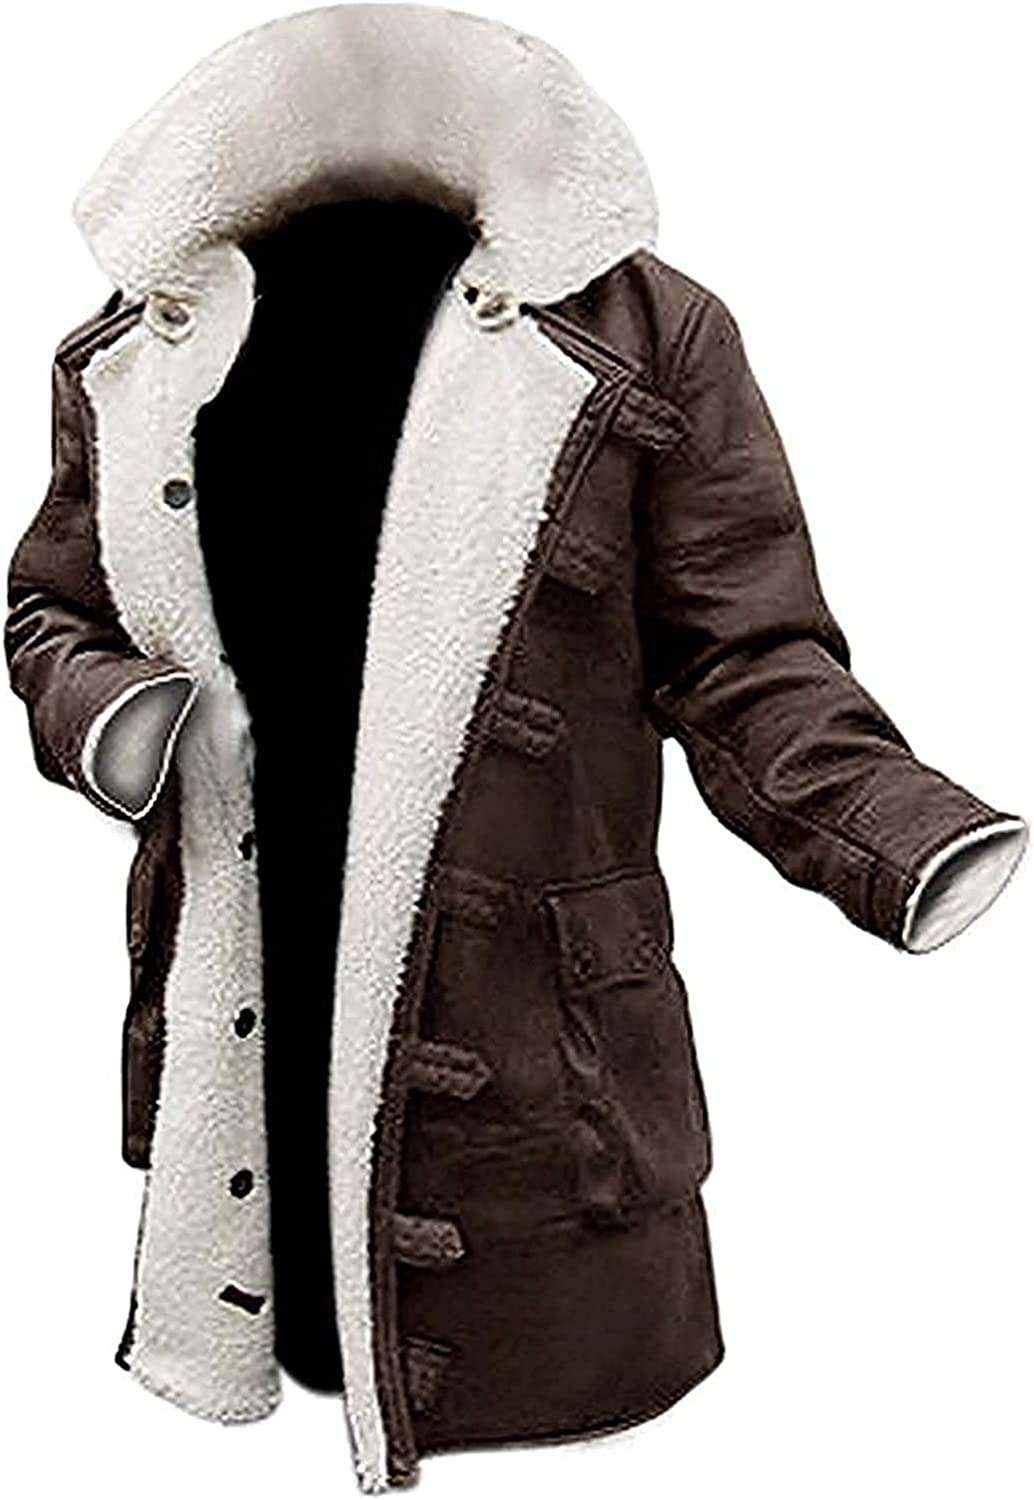 Bomber Jacket Faux Leather Bane Coat Fur with Costume Limited 55% OFF price